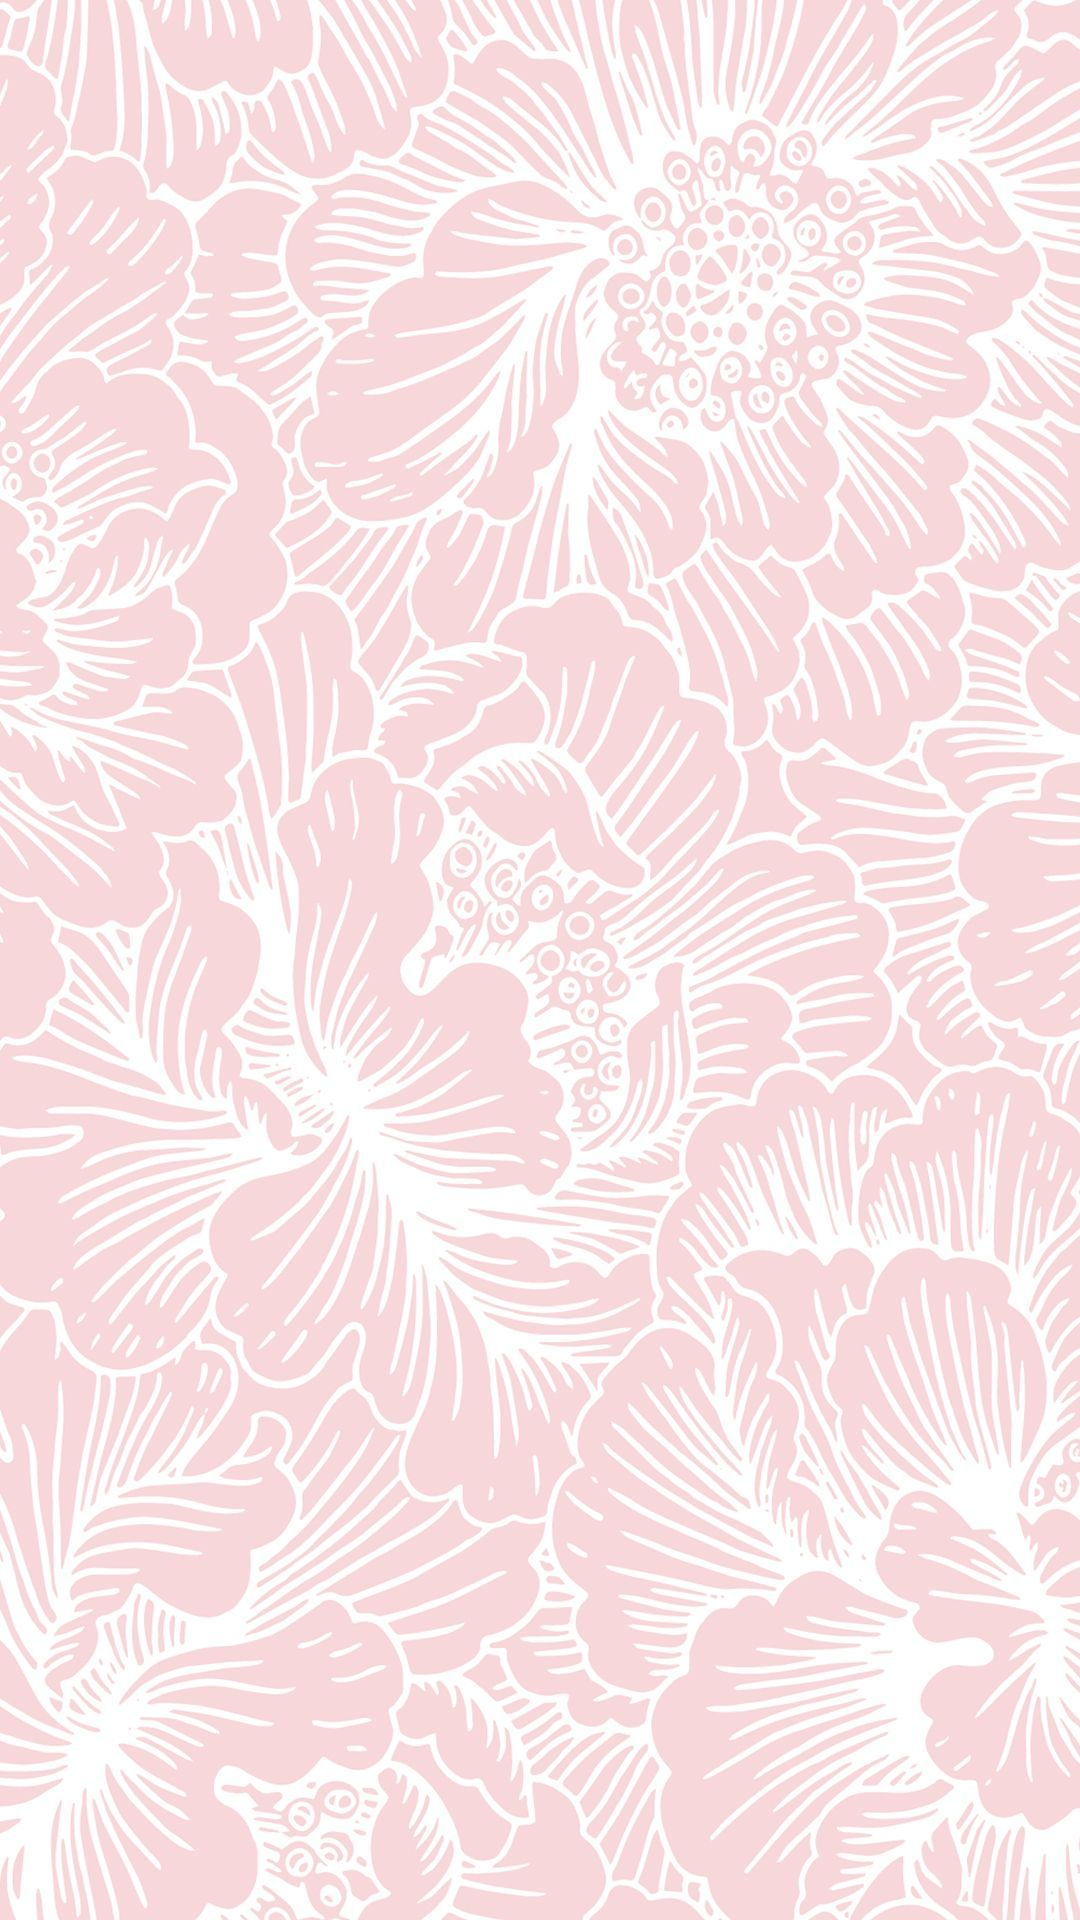 Aesthetic Pink And White Background Flower Wallpaper Pink Wallpaper Floral Wallpaper